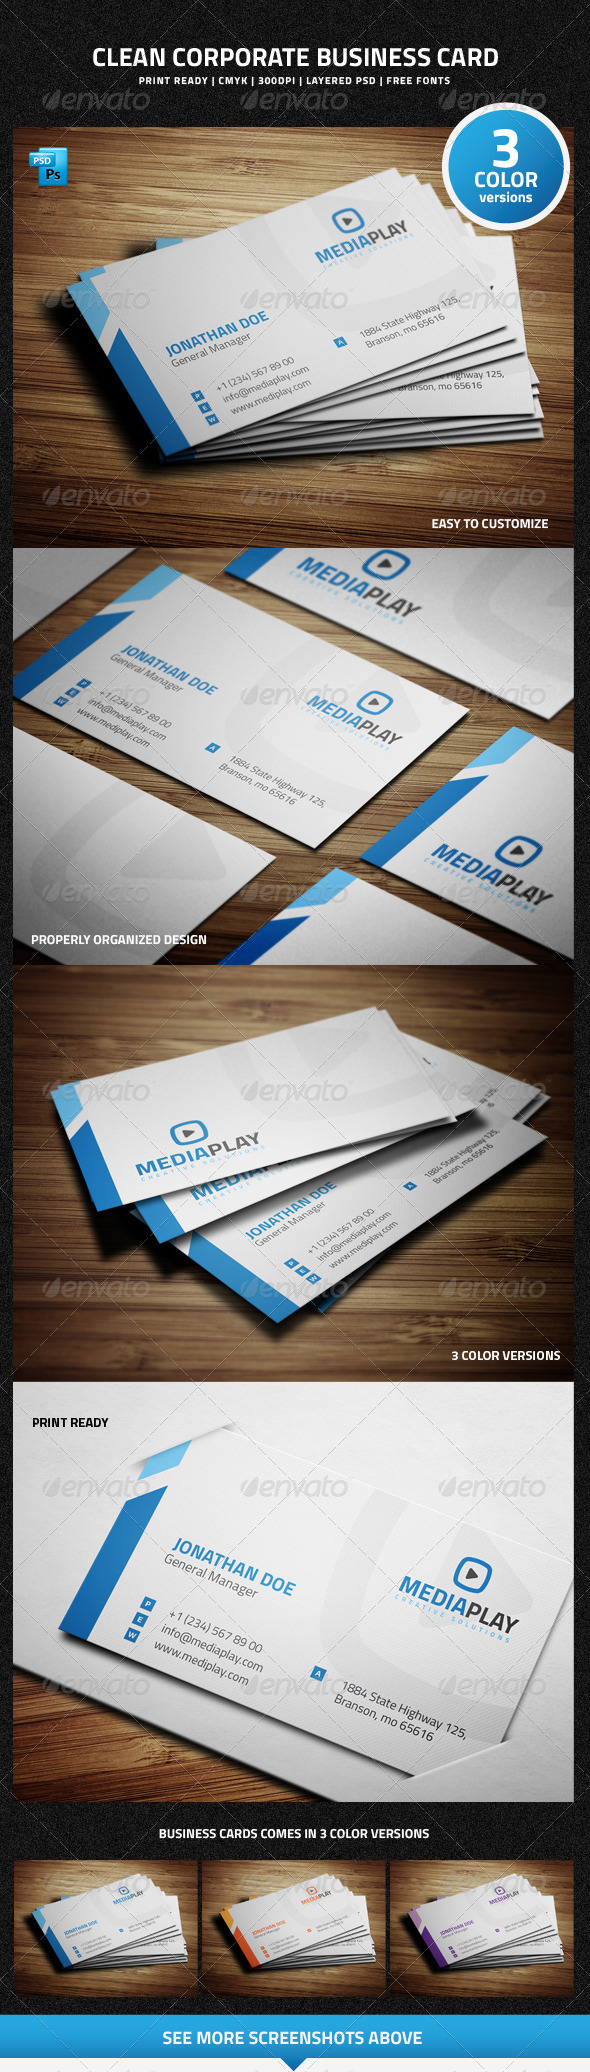 Clean Corporate Business Card - 29 - Corporate Business Cards